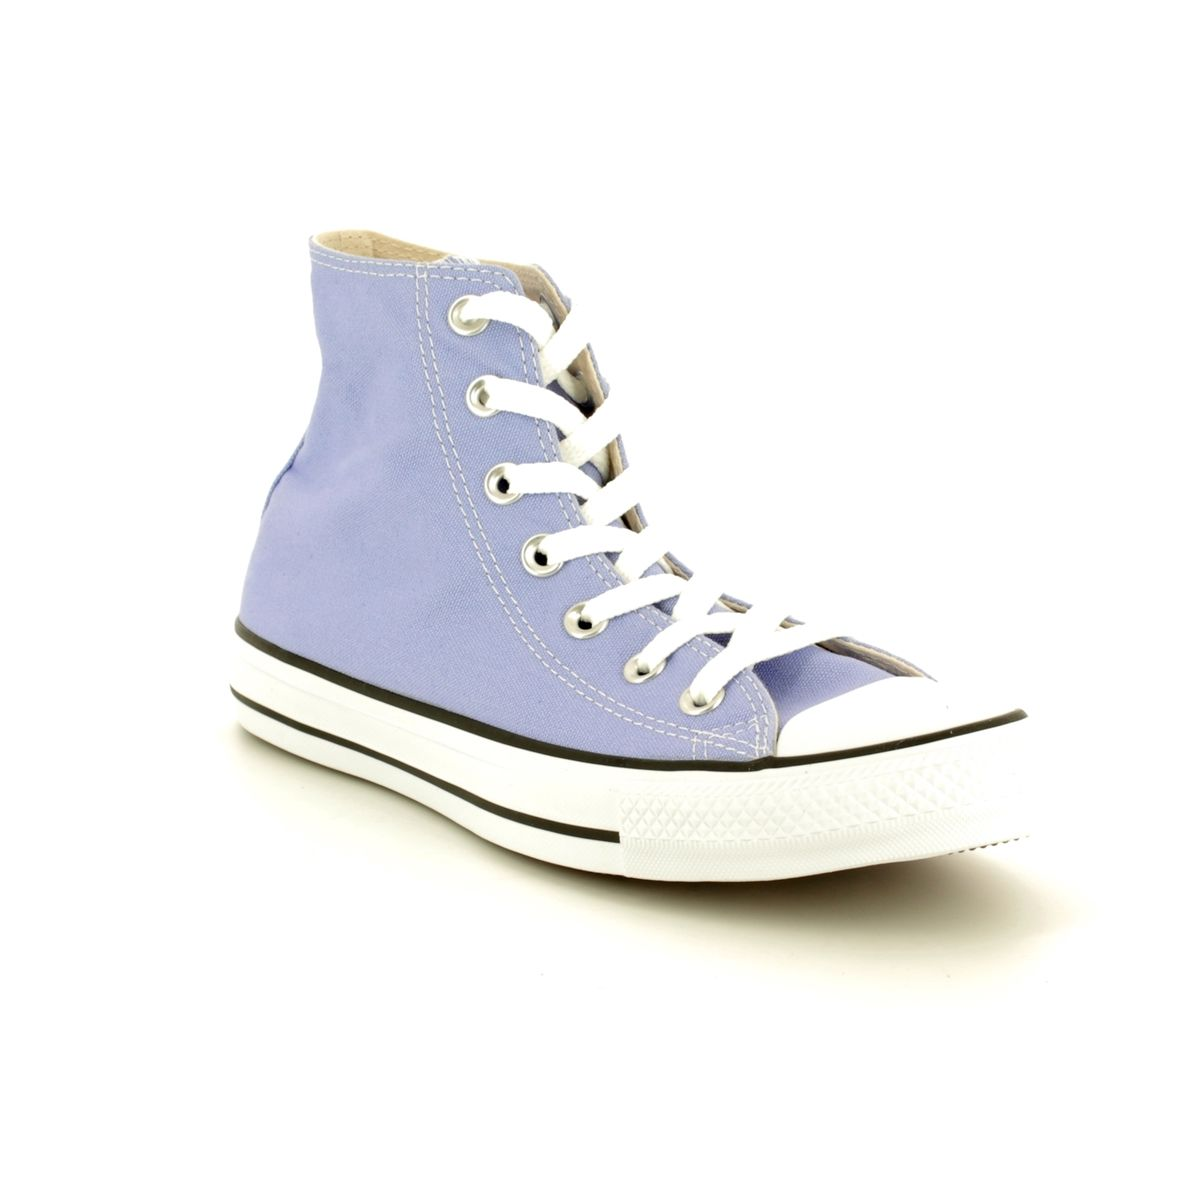 929340ca9557f0 Converse All Star Ox Hi Top Lilac Twilight Pulse 160455C unisex trainers